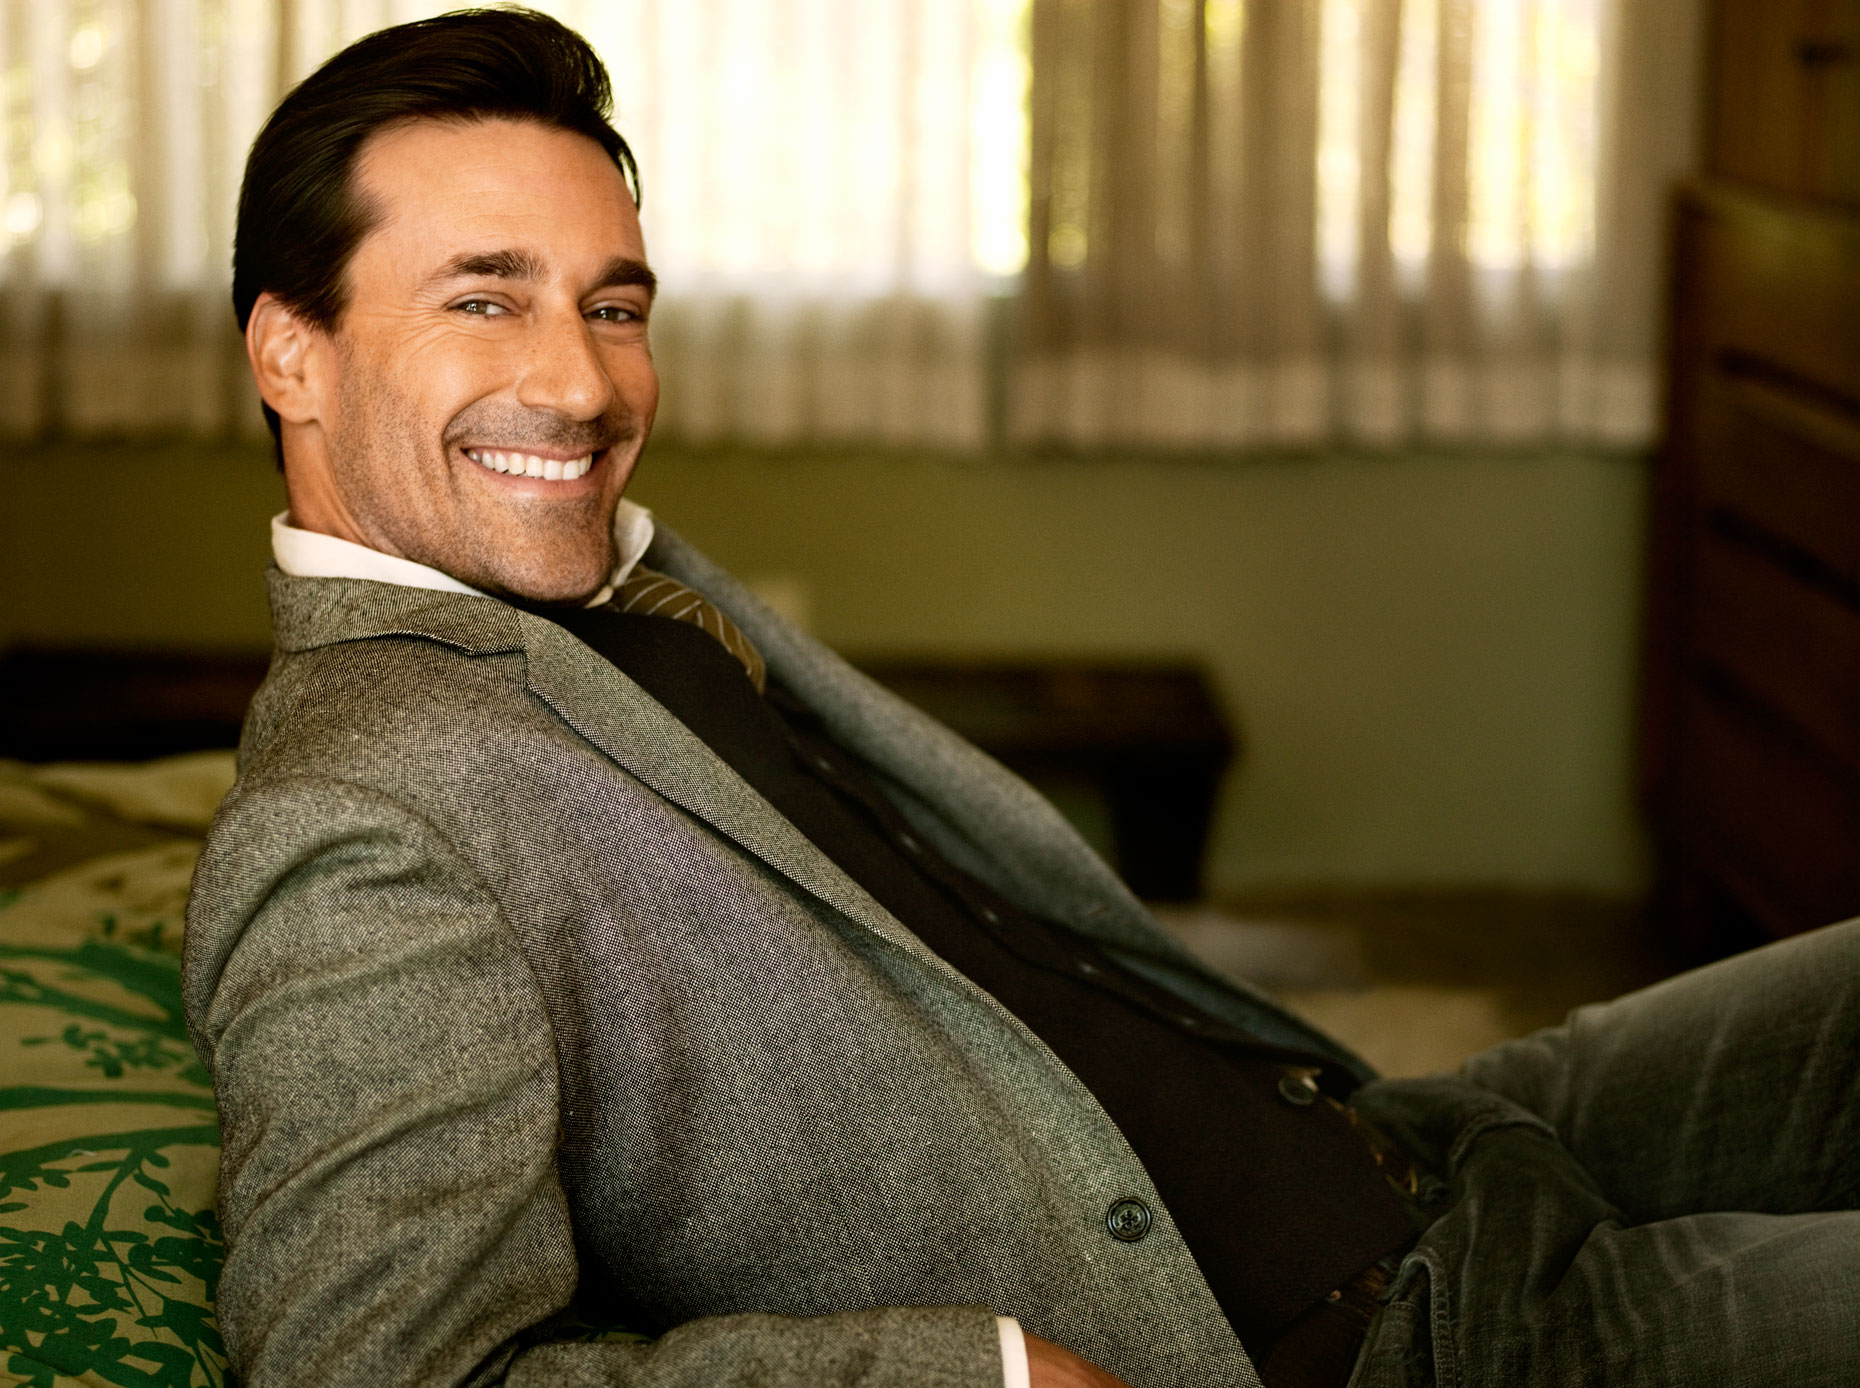 Motivational Quotes Wallpapers For Android Jon Hamm Hd Wallpapers